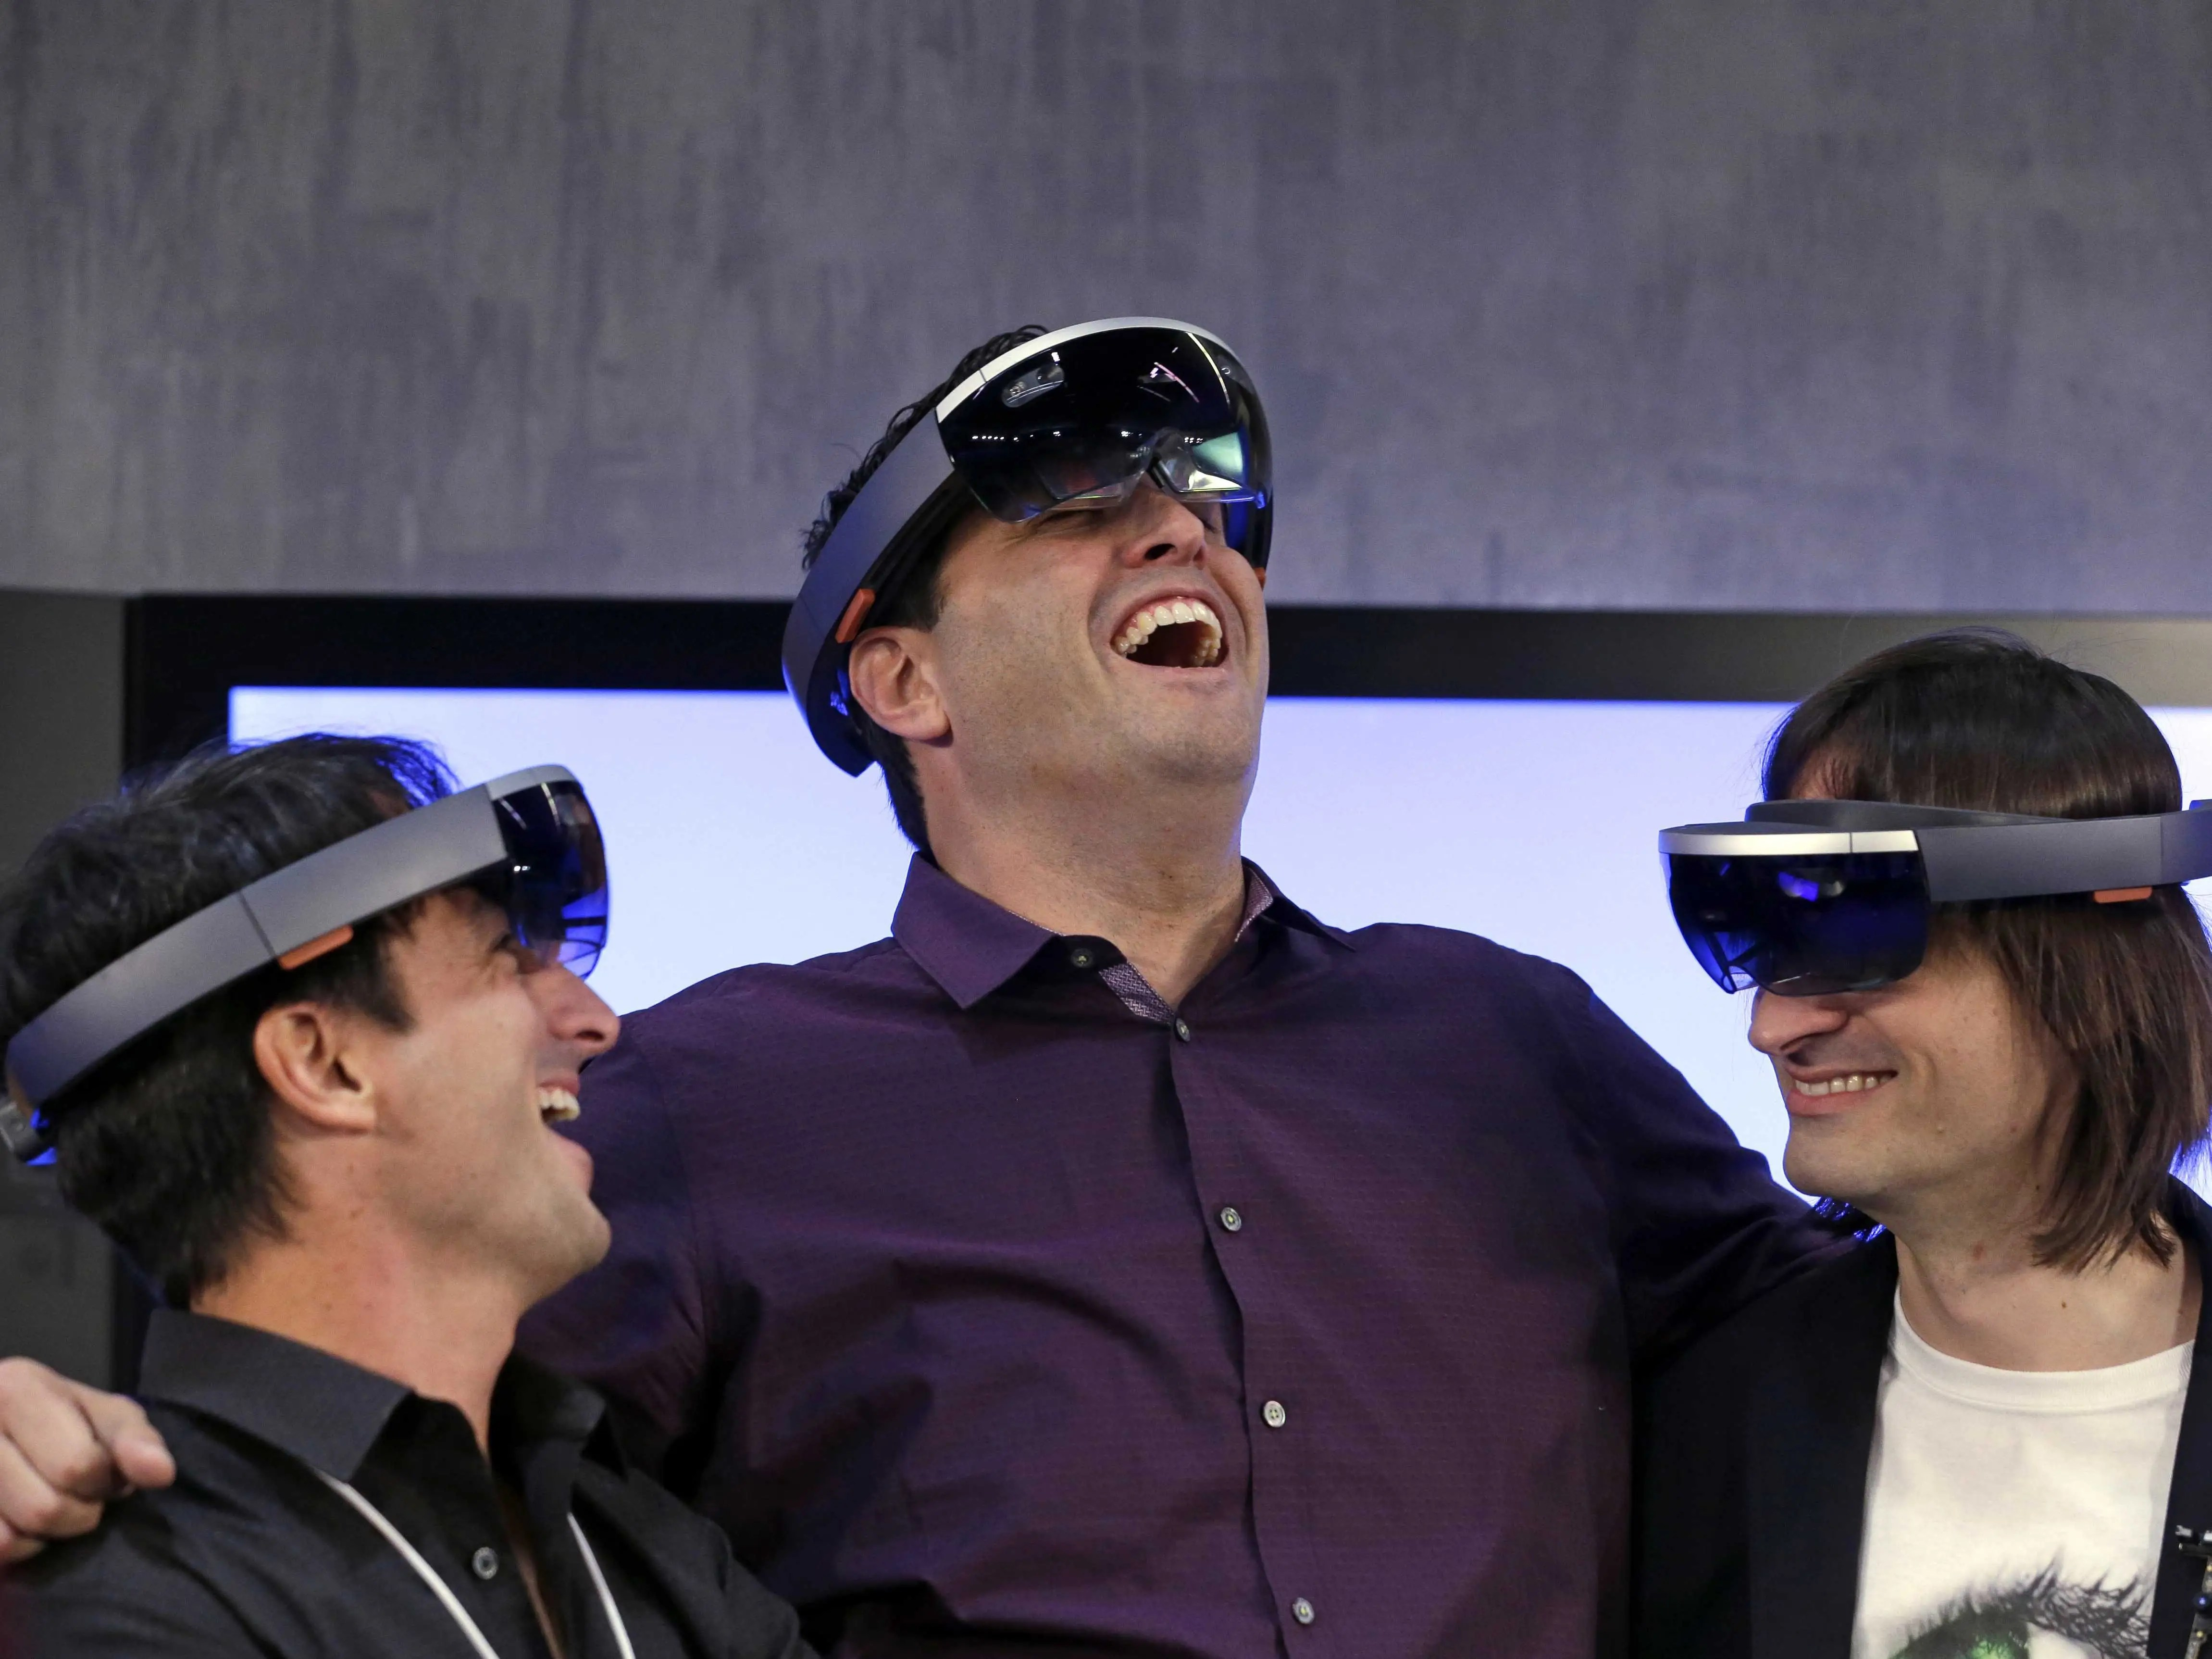 microsoft executives testing the hololens